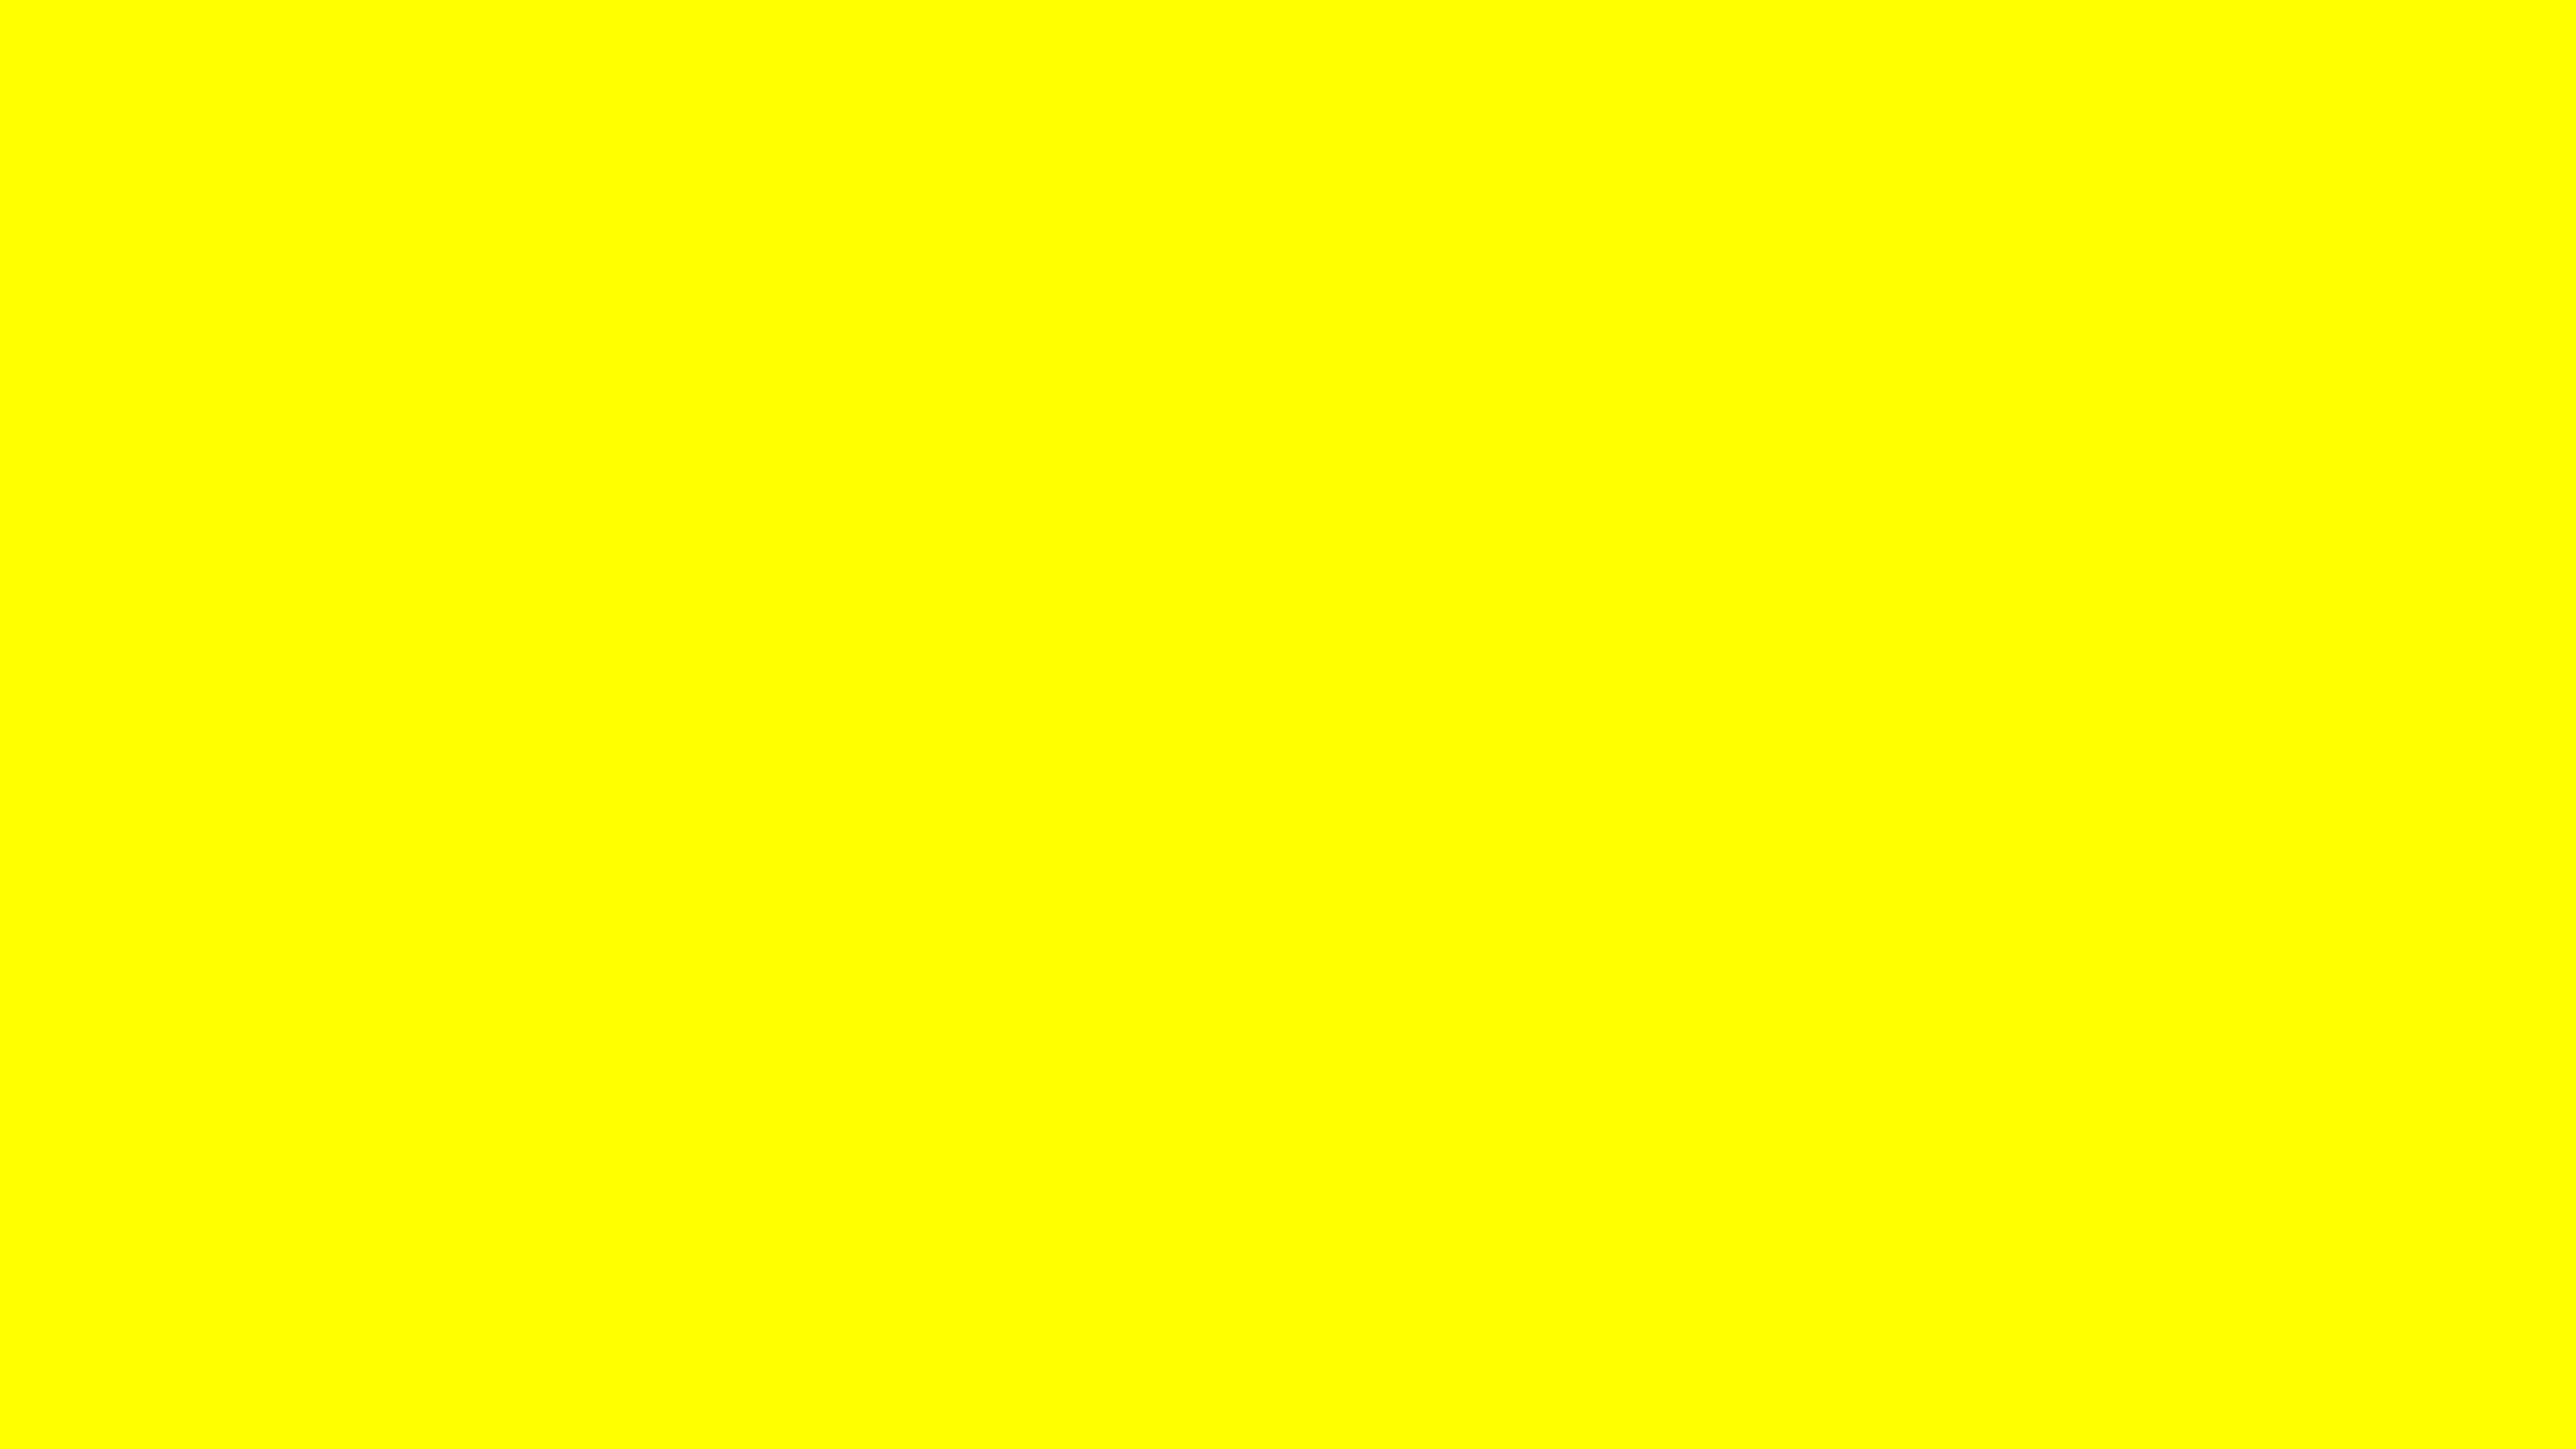 5120x2880 Yellow Solid Color Background